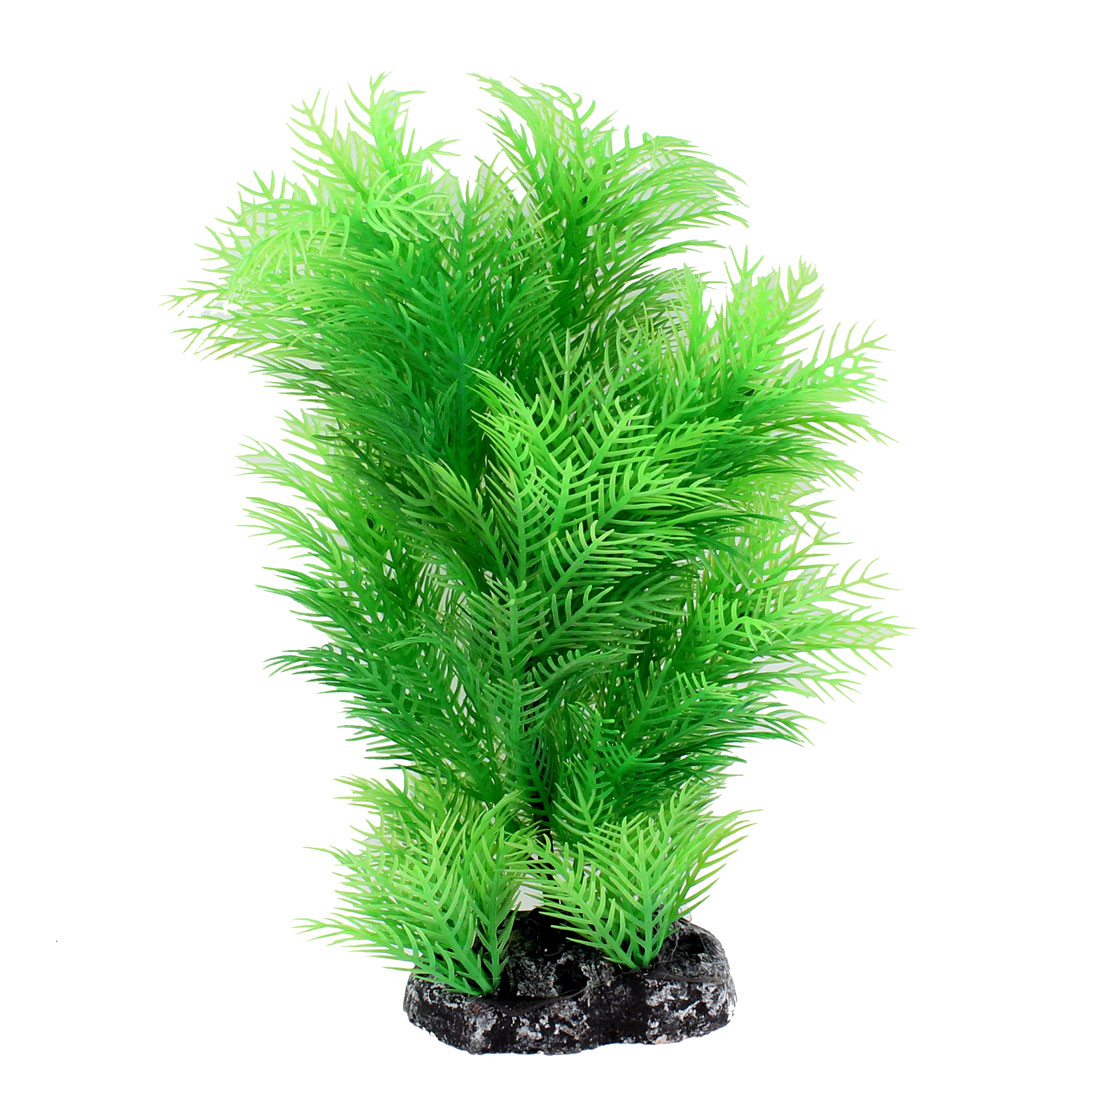 "Manmade Aquarium Underwater Plant Ornament Green 9"" Height"